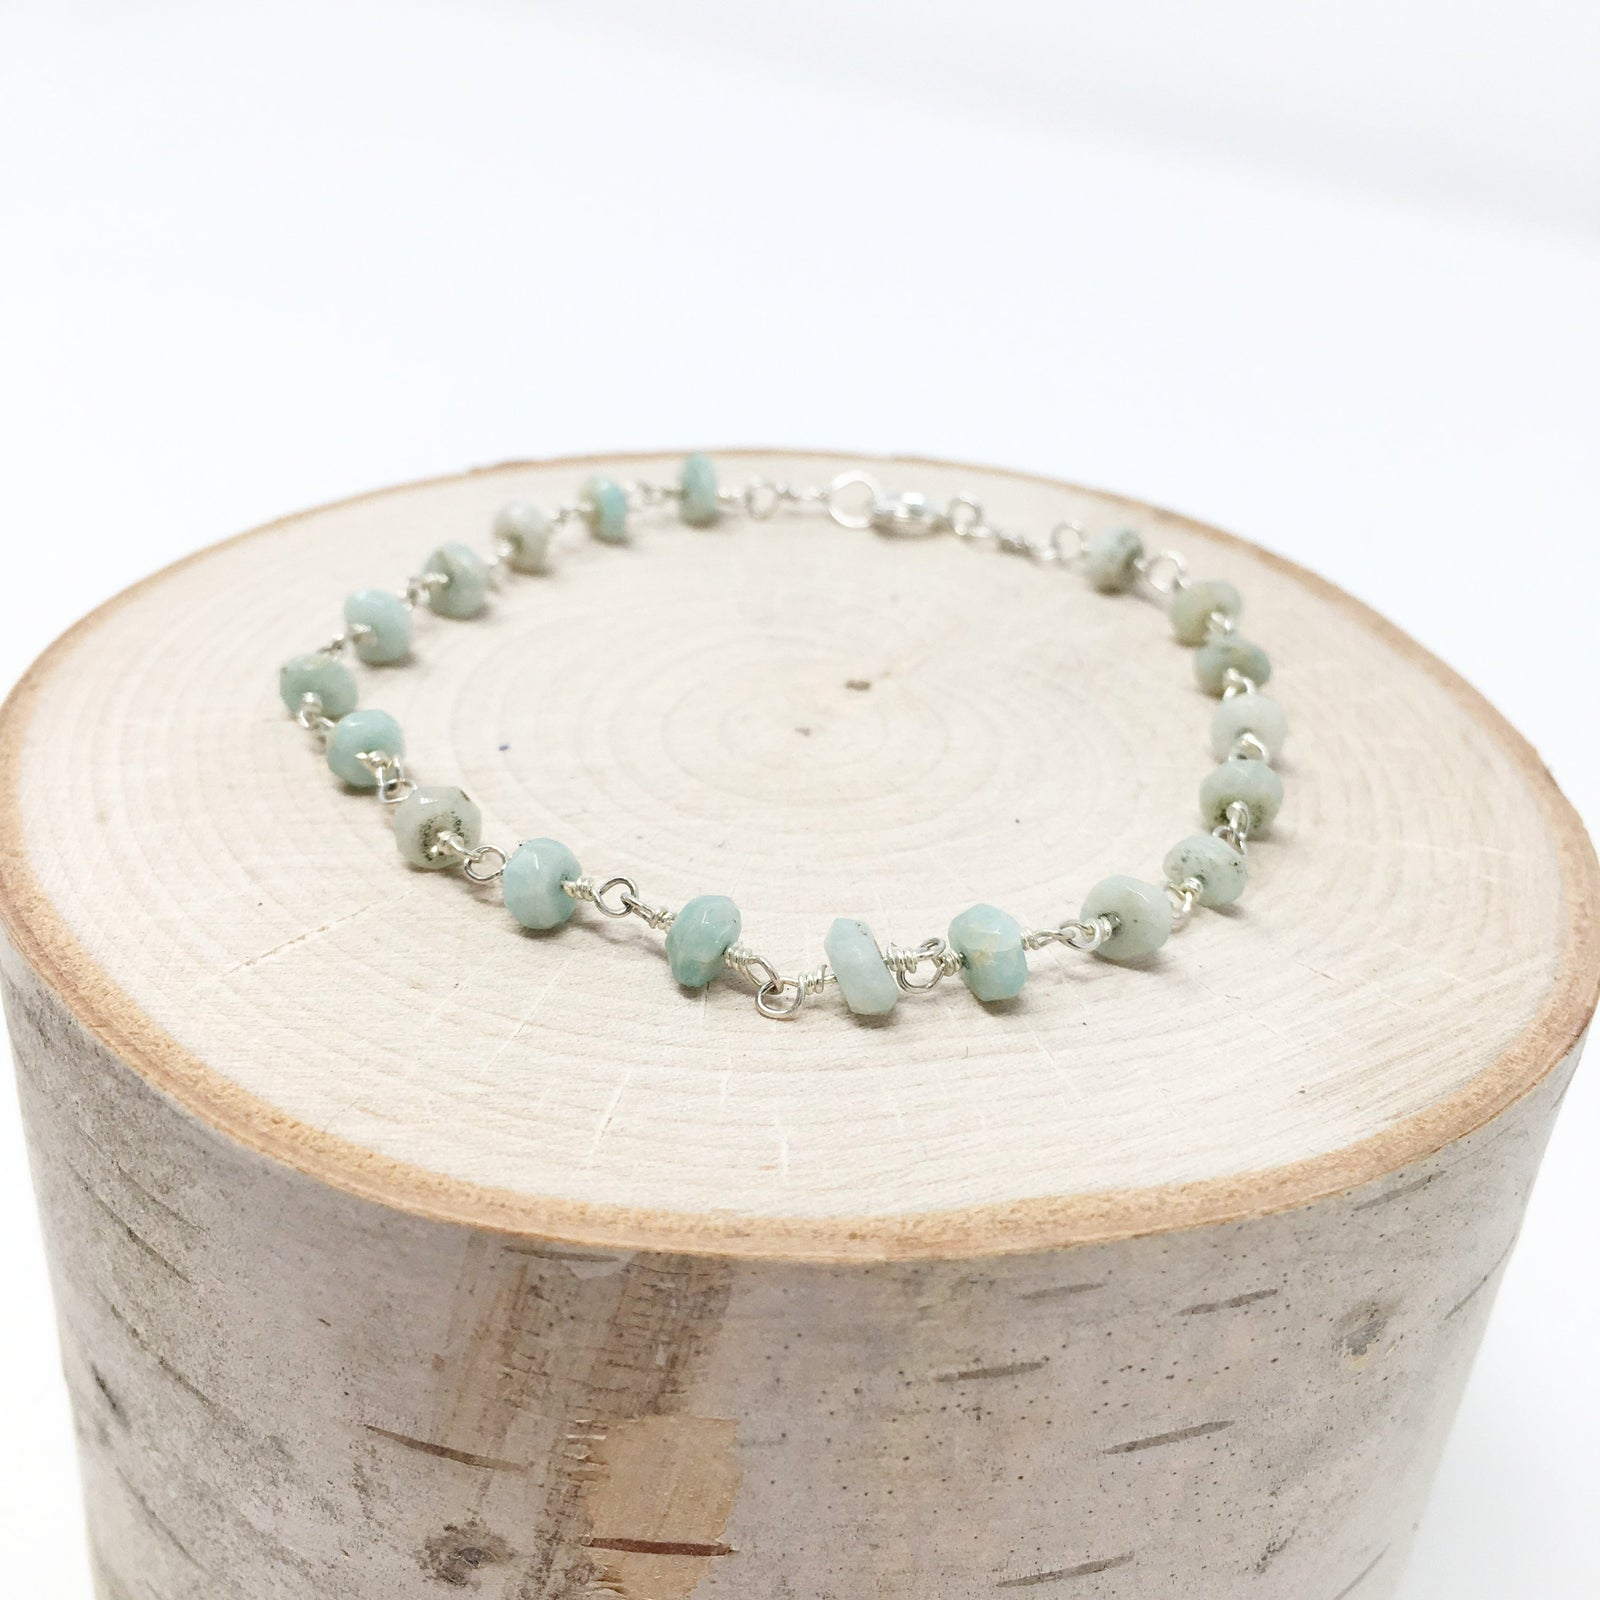 DARLING BEADED CHAIN BRACELET | AMAZONITE